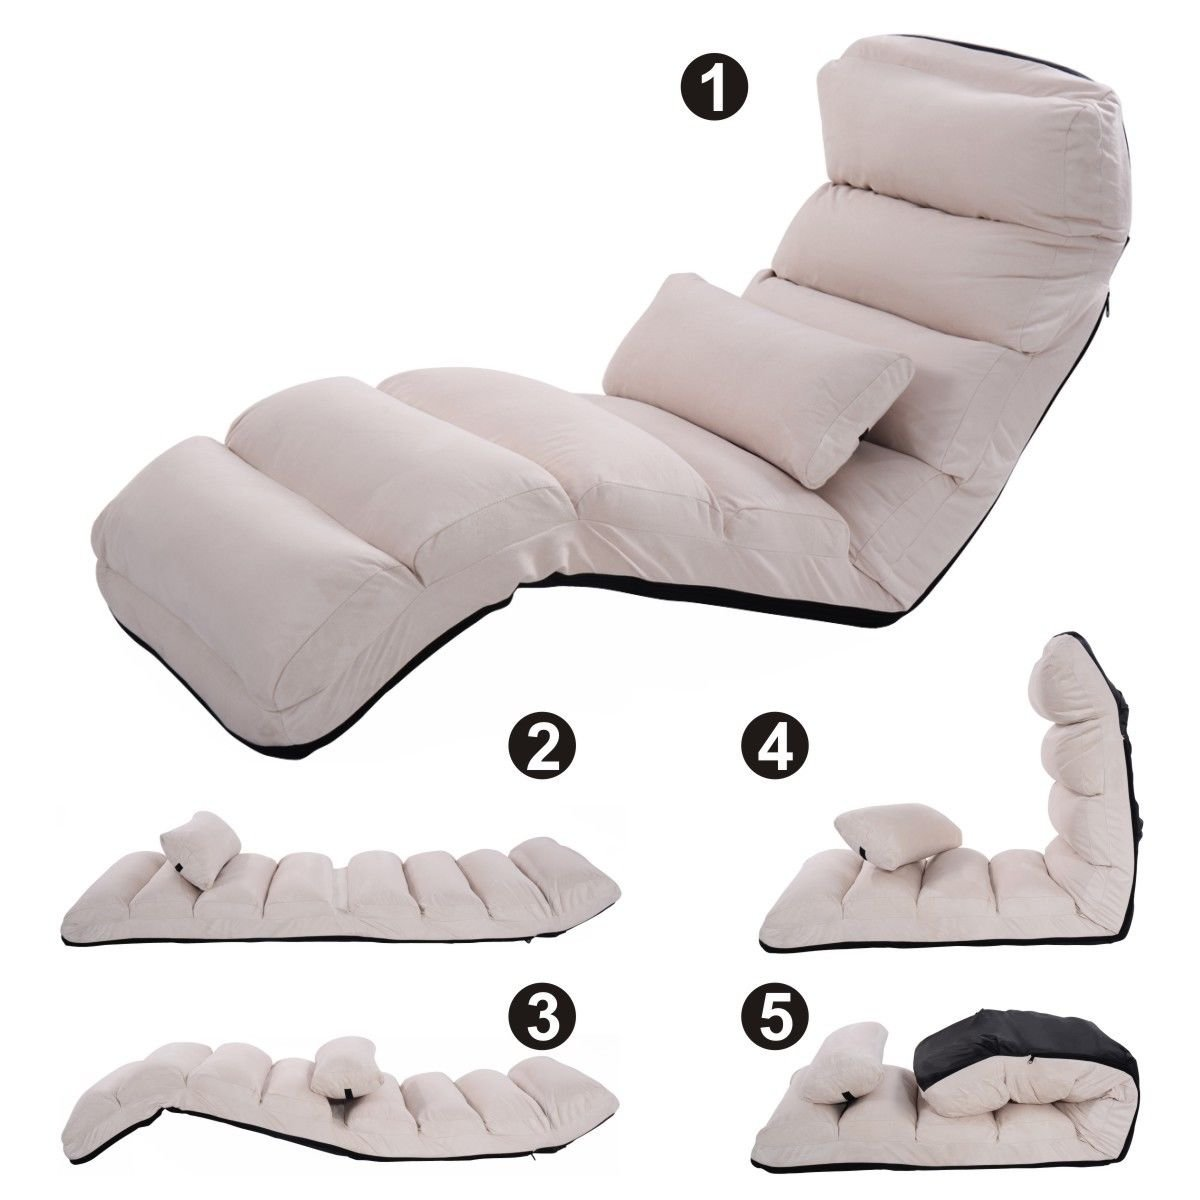 New Beige Folding Lazy Sofa Chair Stylish Sofa Couch Beds Lounge Chair W/Pillow